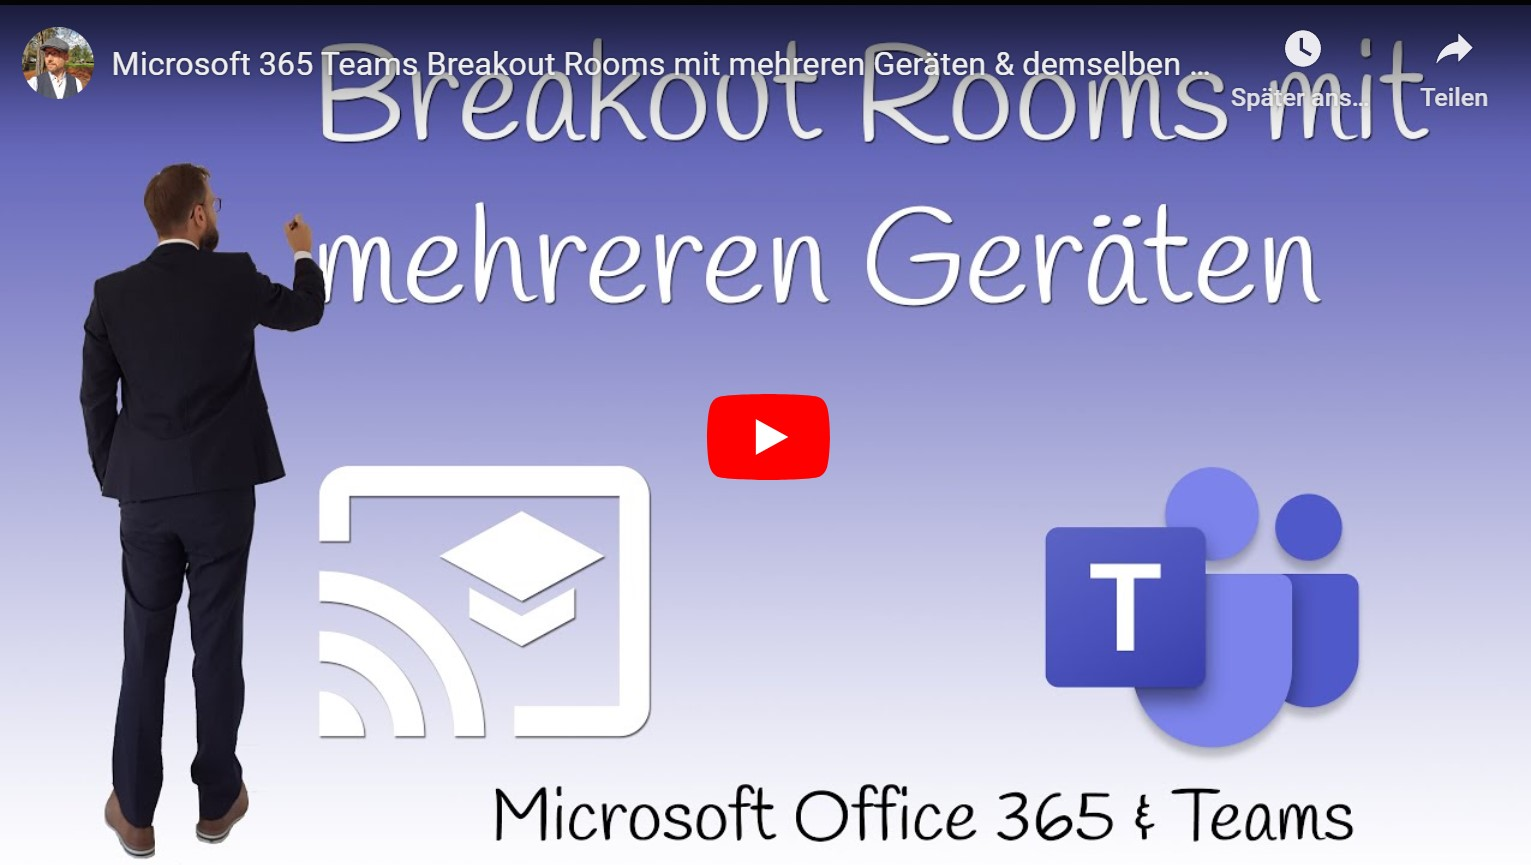 Teams_Breakout_Rooms_mehrere_Geraete